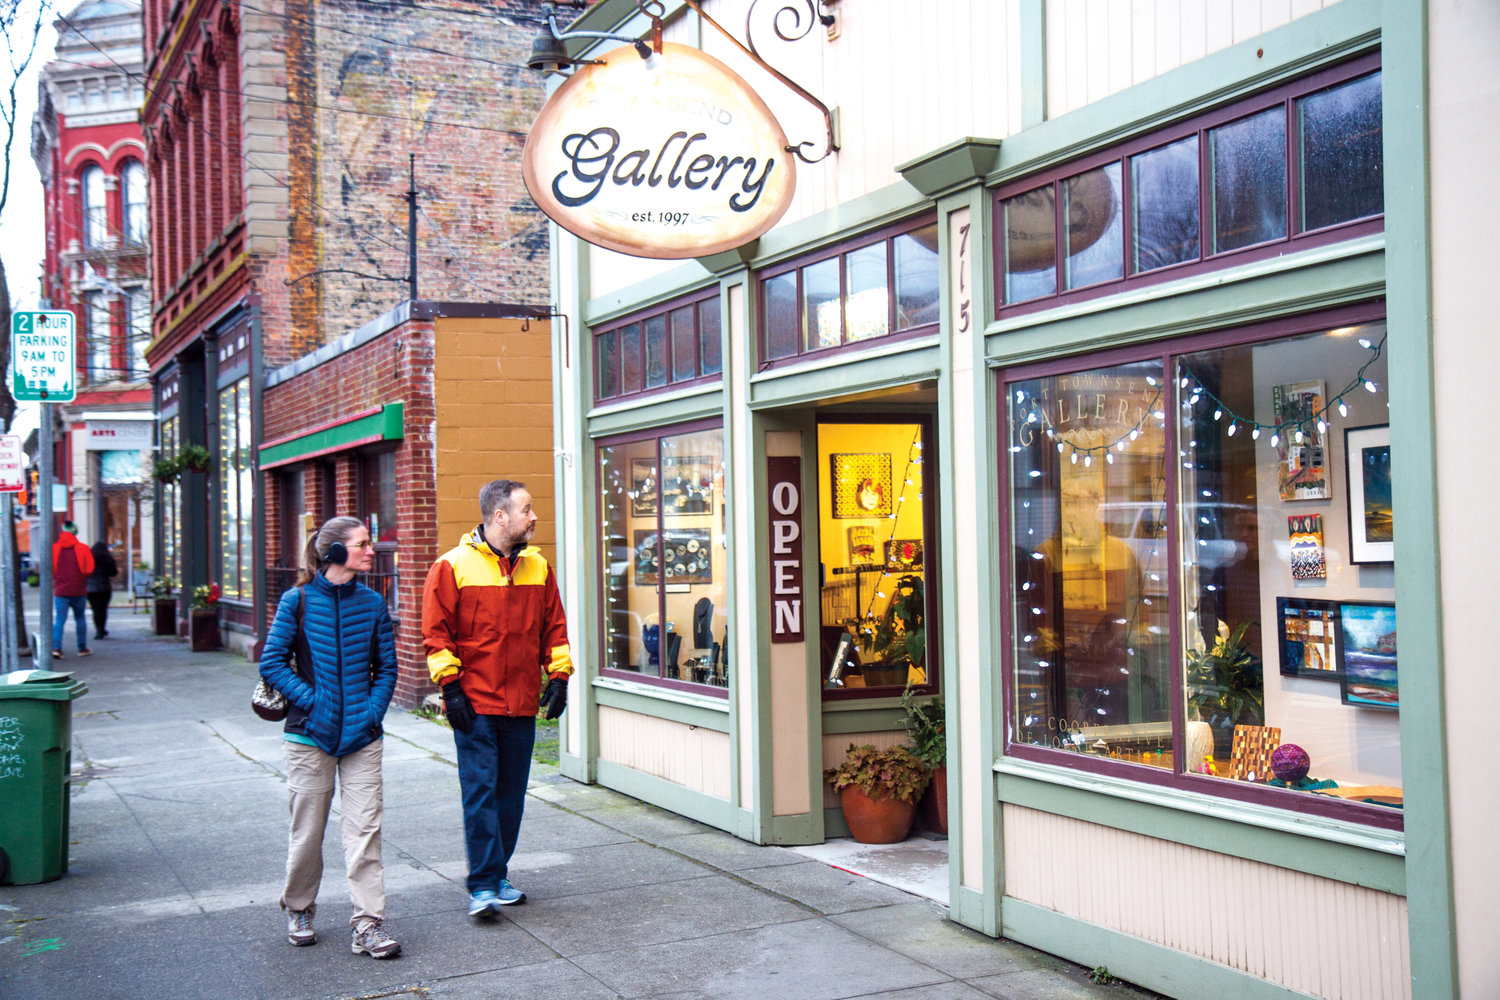 After ringing in the New Year, head to downtown Port Townsend to participate in Gallery Walk, which will take place Jan. 5 with several participants, including Port Townsend Gallery, 715 Water St.